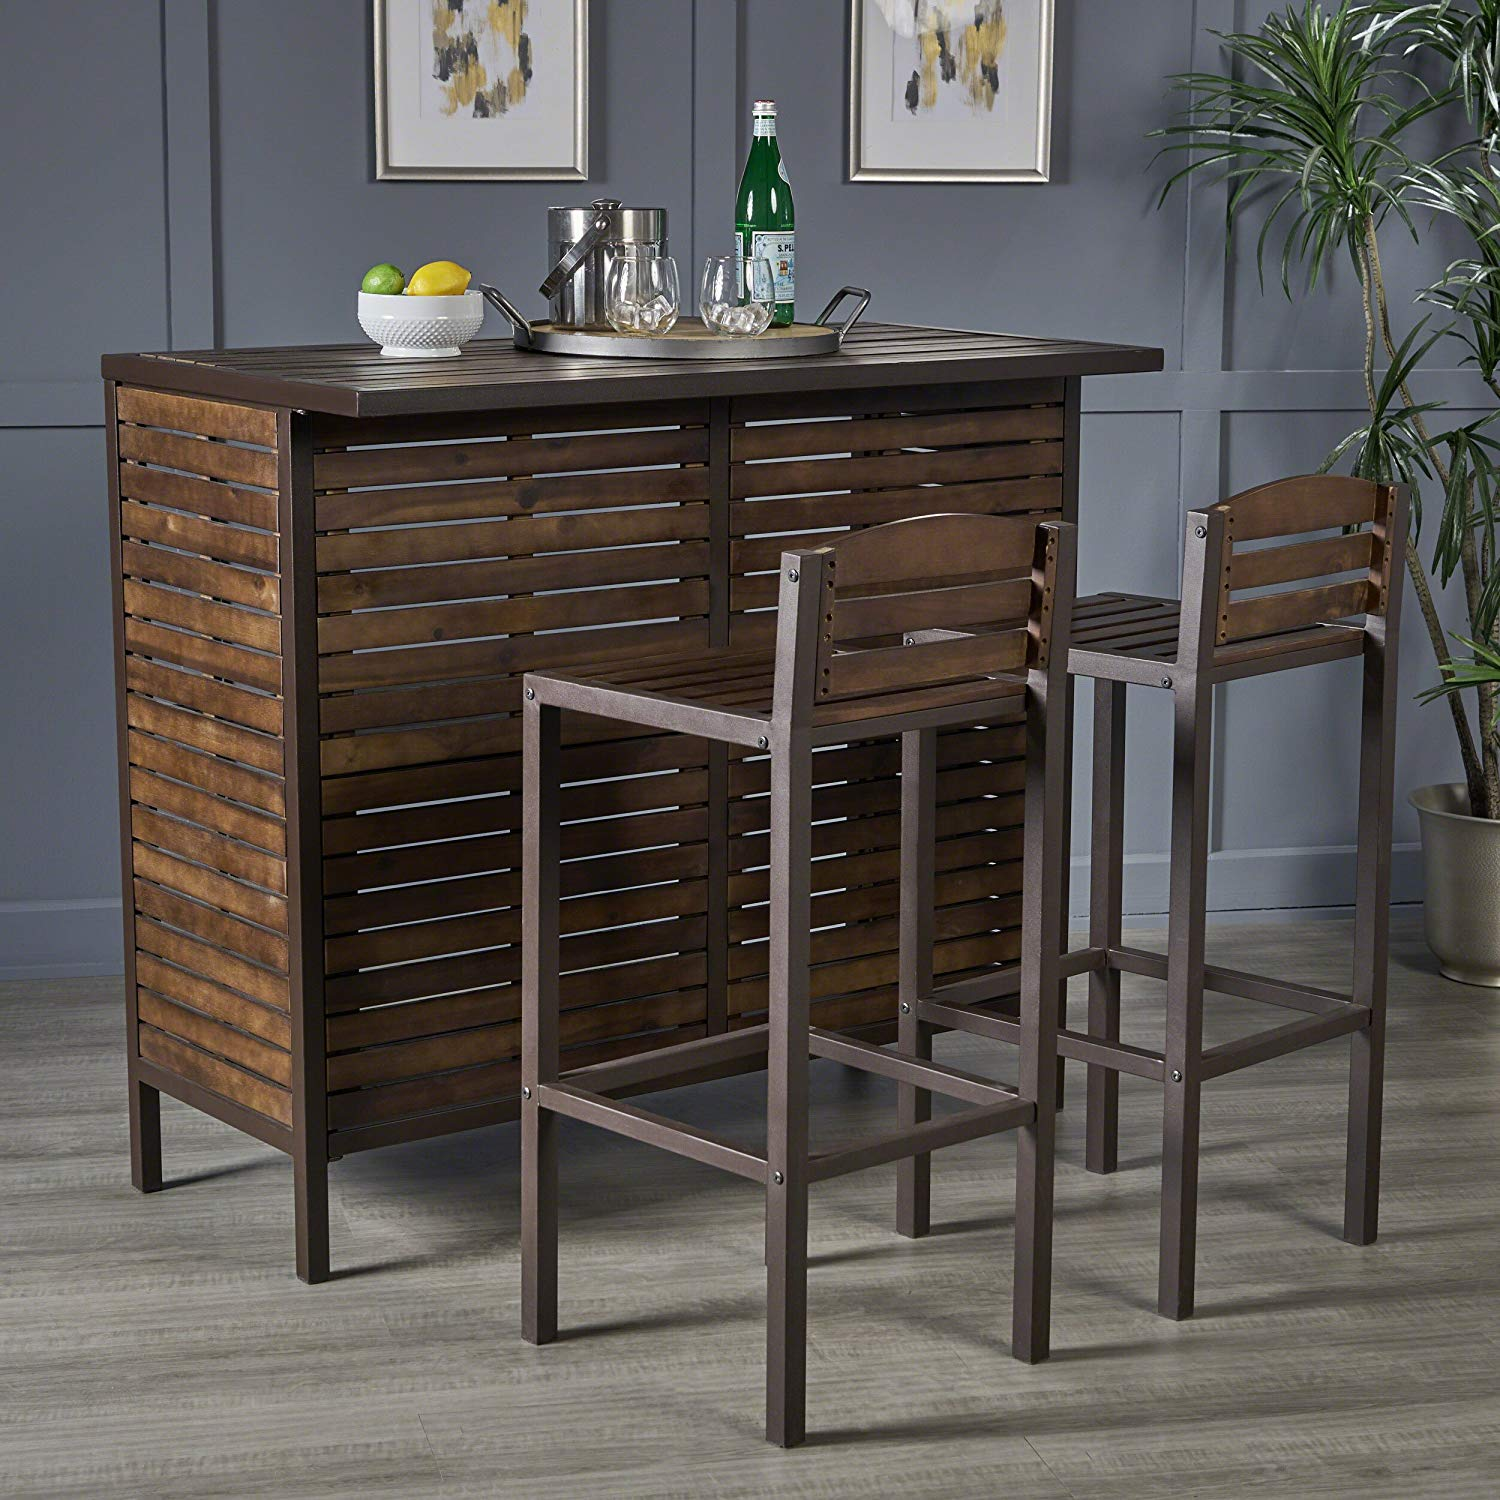 lorelei indoor dark brown acacia bar set with rustic glass accent table metal finish accents kitchen dining wine cabinet nautical room jules small outdoor storage marble coffee